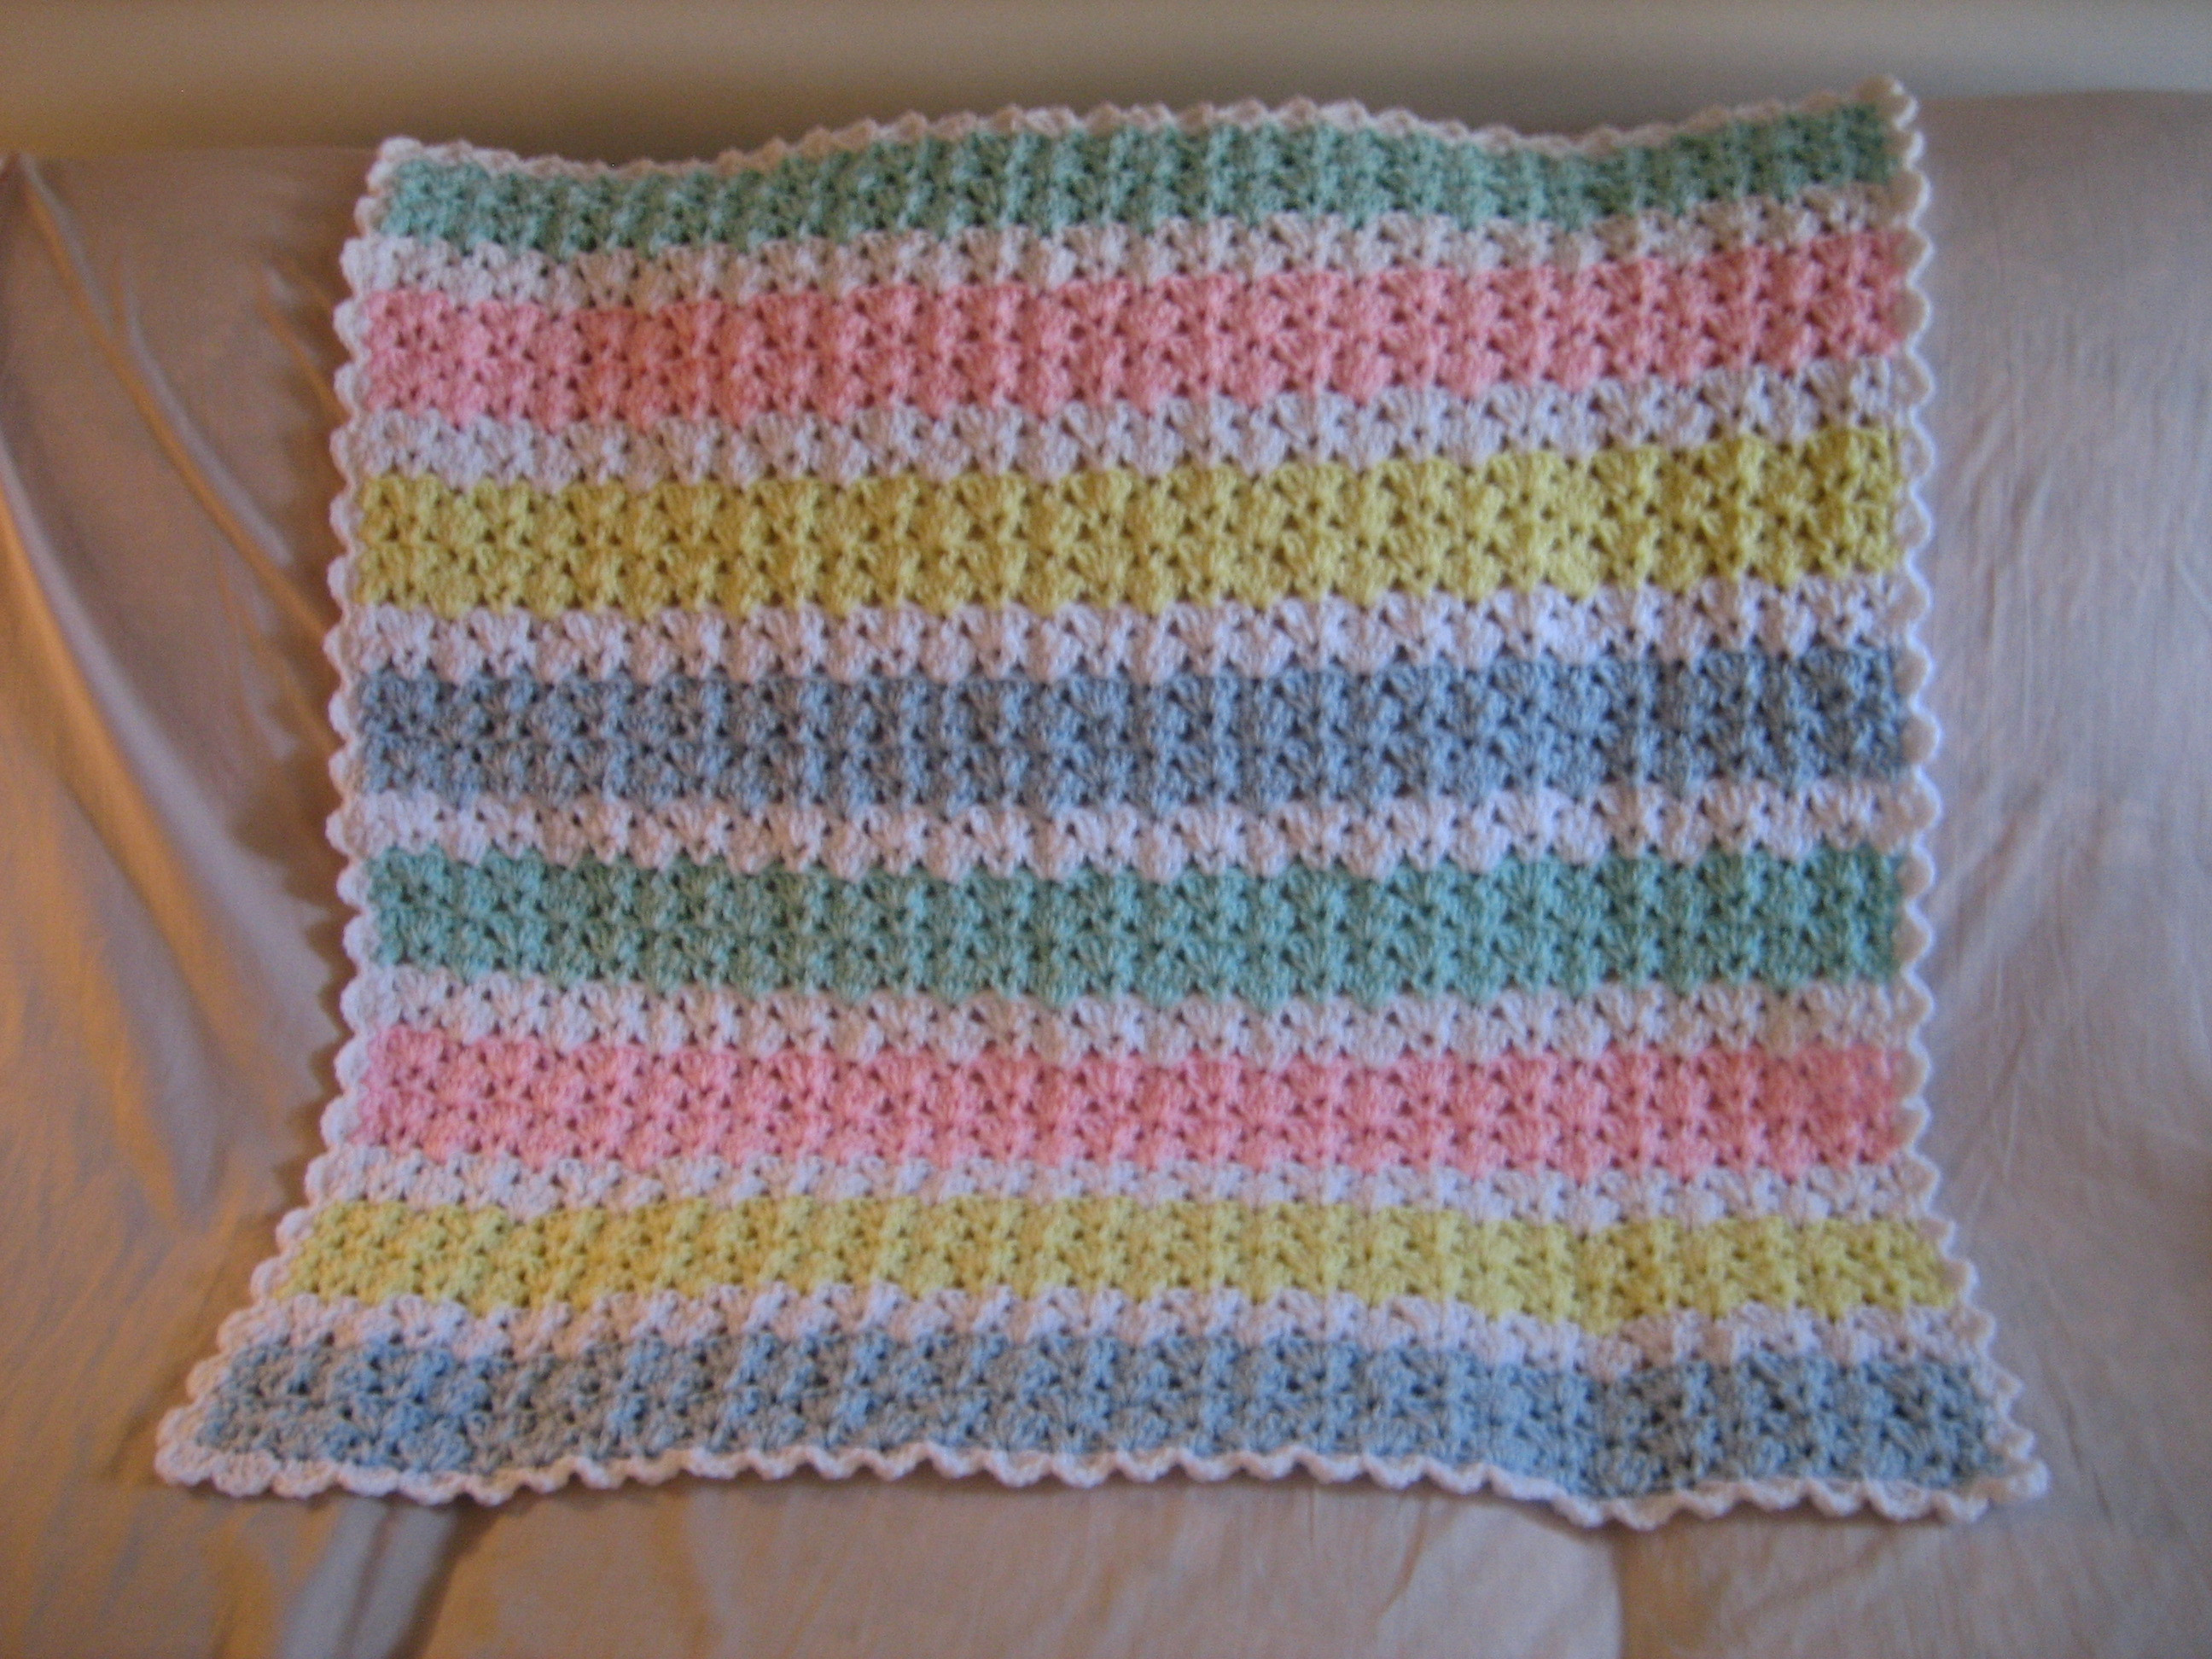 Luxury Baby Blanket Crochet Patterns for Beginners Crochet and Knit Free Knitting Pattern for Baby Blanket Beginners Of Luxury 43 Photos Free Knitting Pattern for Baby Blanket Beginners